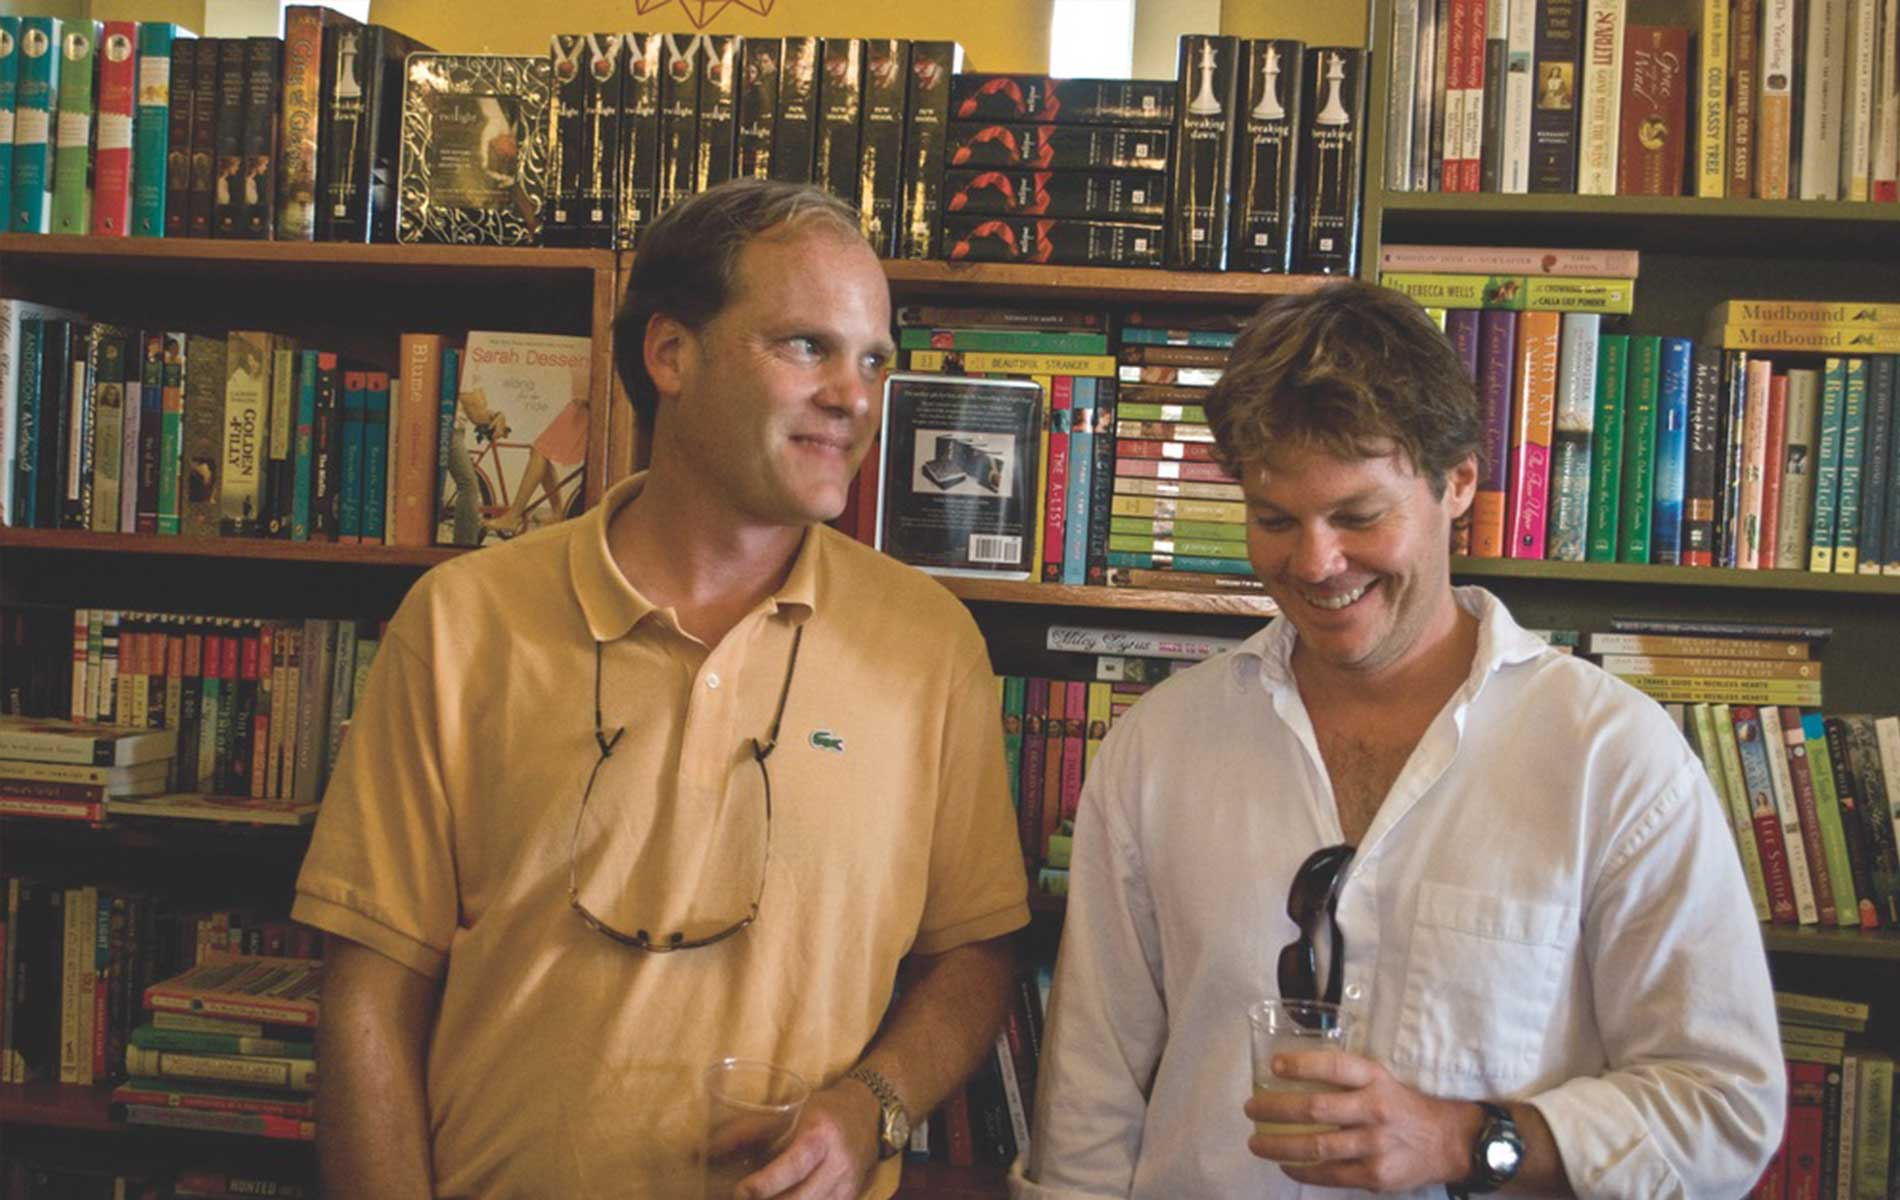 seaside writers conference florida david magee scott morris authors sundog books